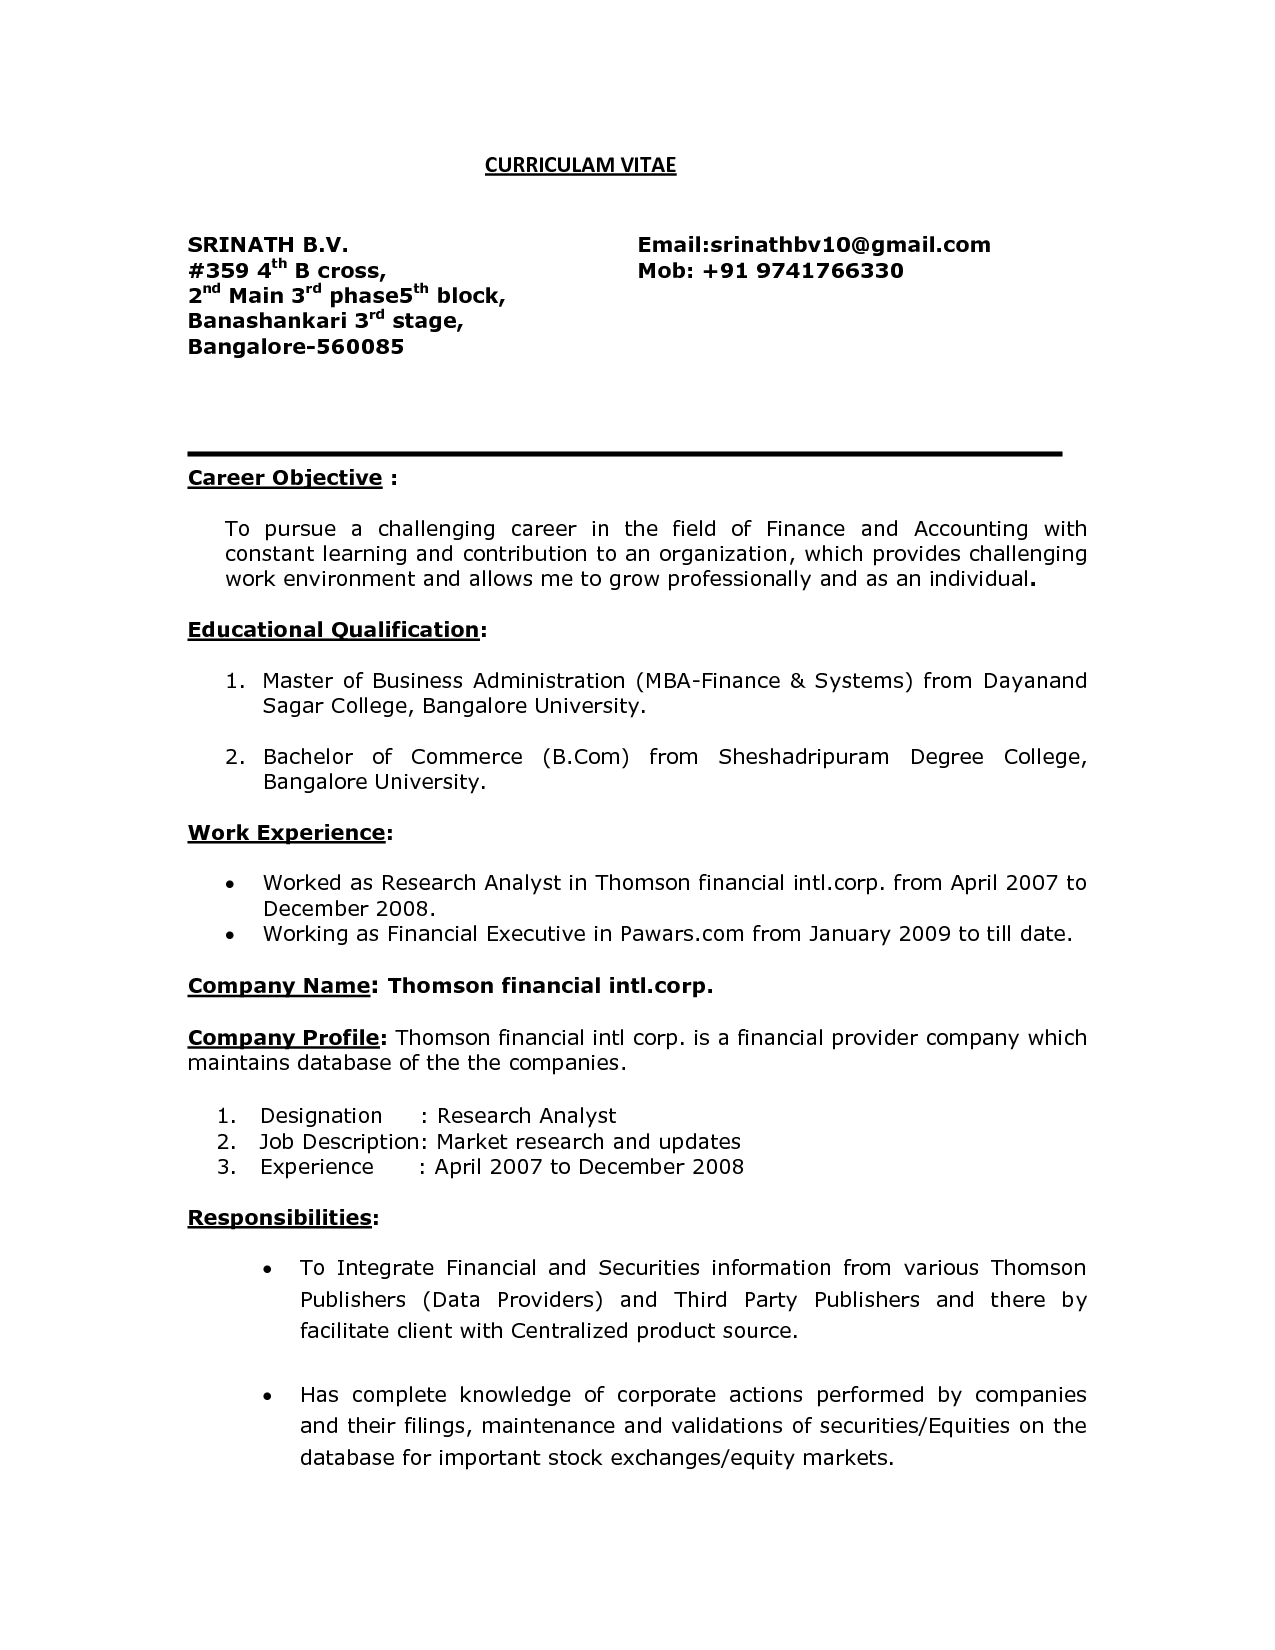 Mba Finance Resume Free Download How To Write Career Objective With Sample